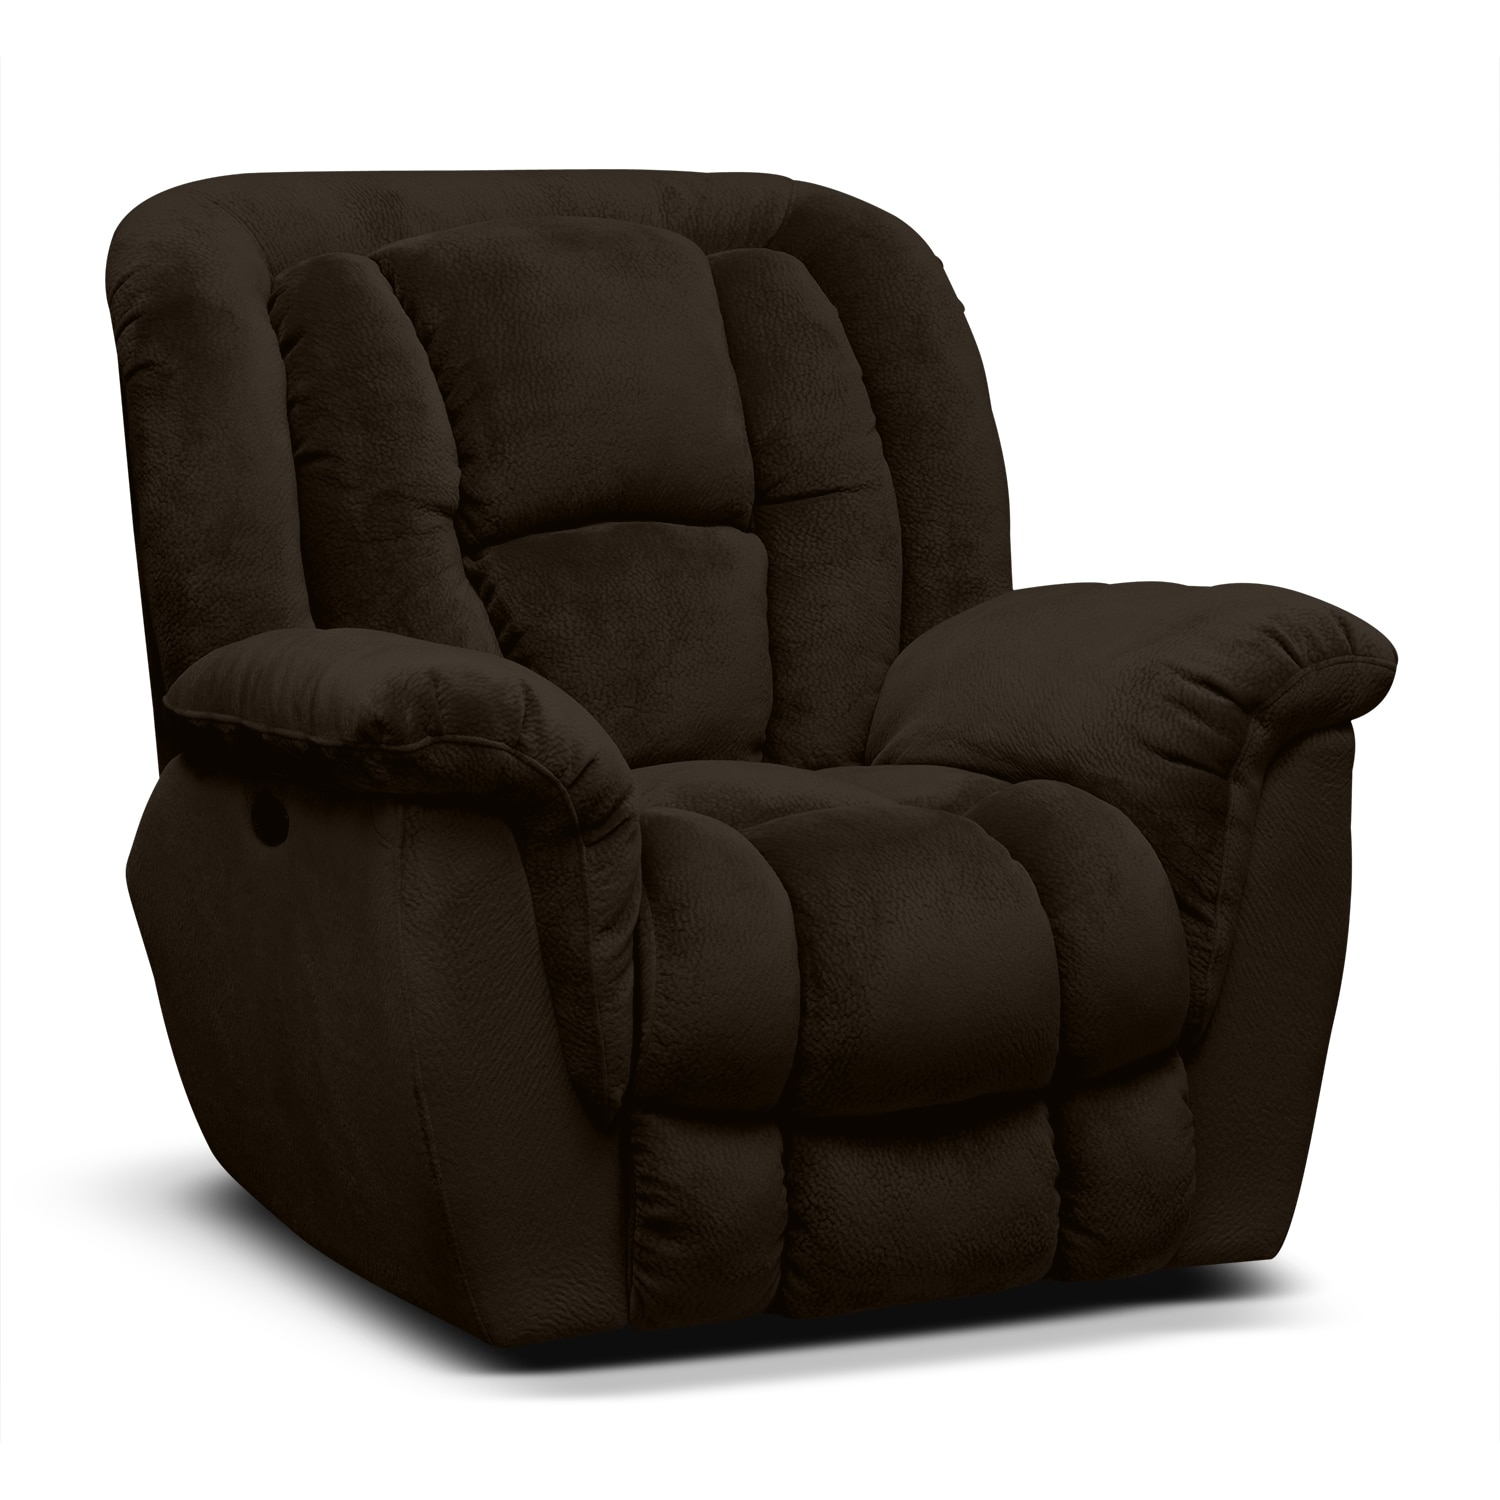 Value City Furniture Sofa Bed Mammoth Upholstery Power Recliner - Value City Furniture